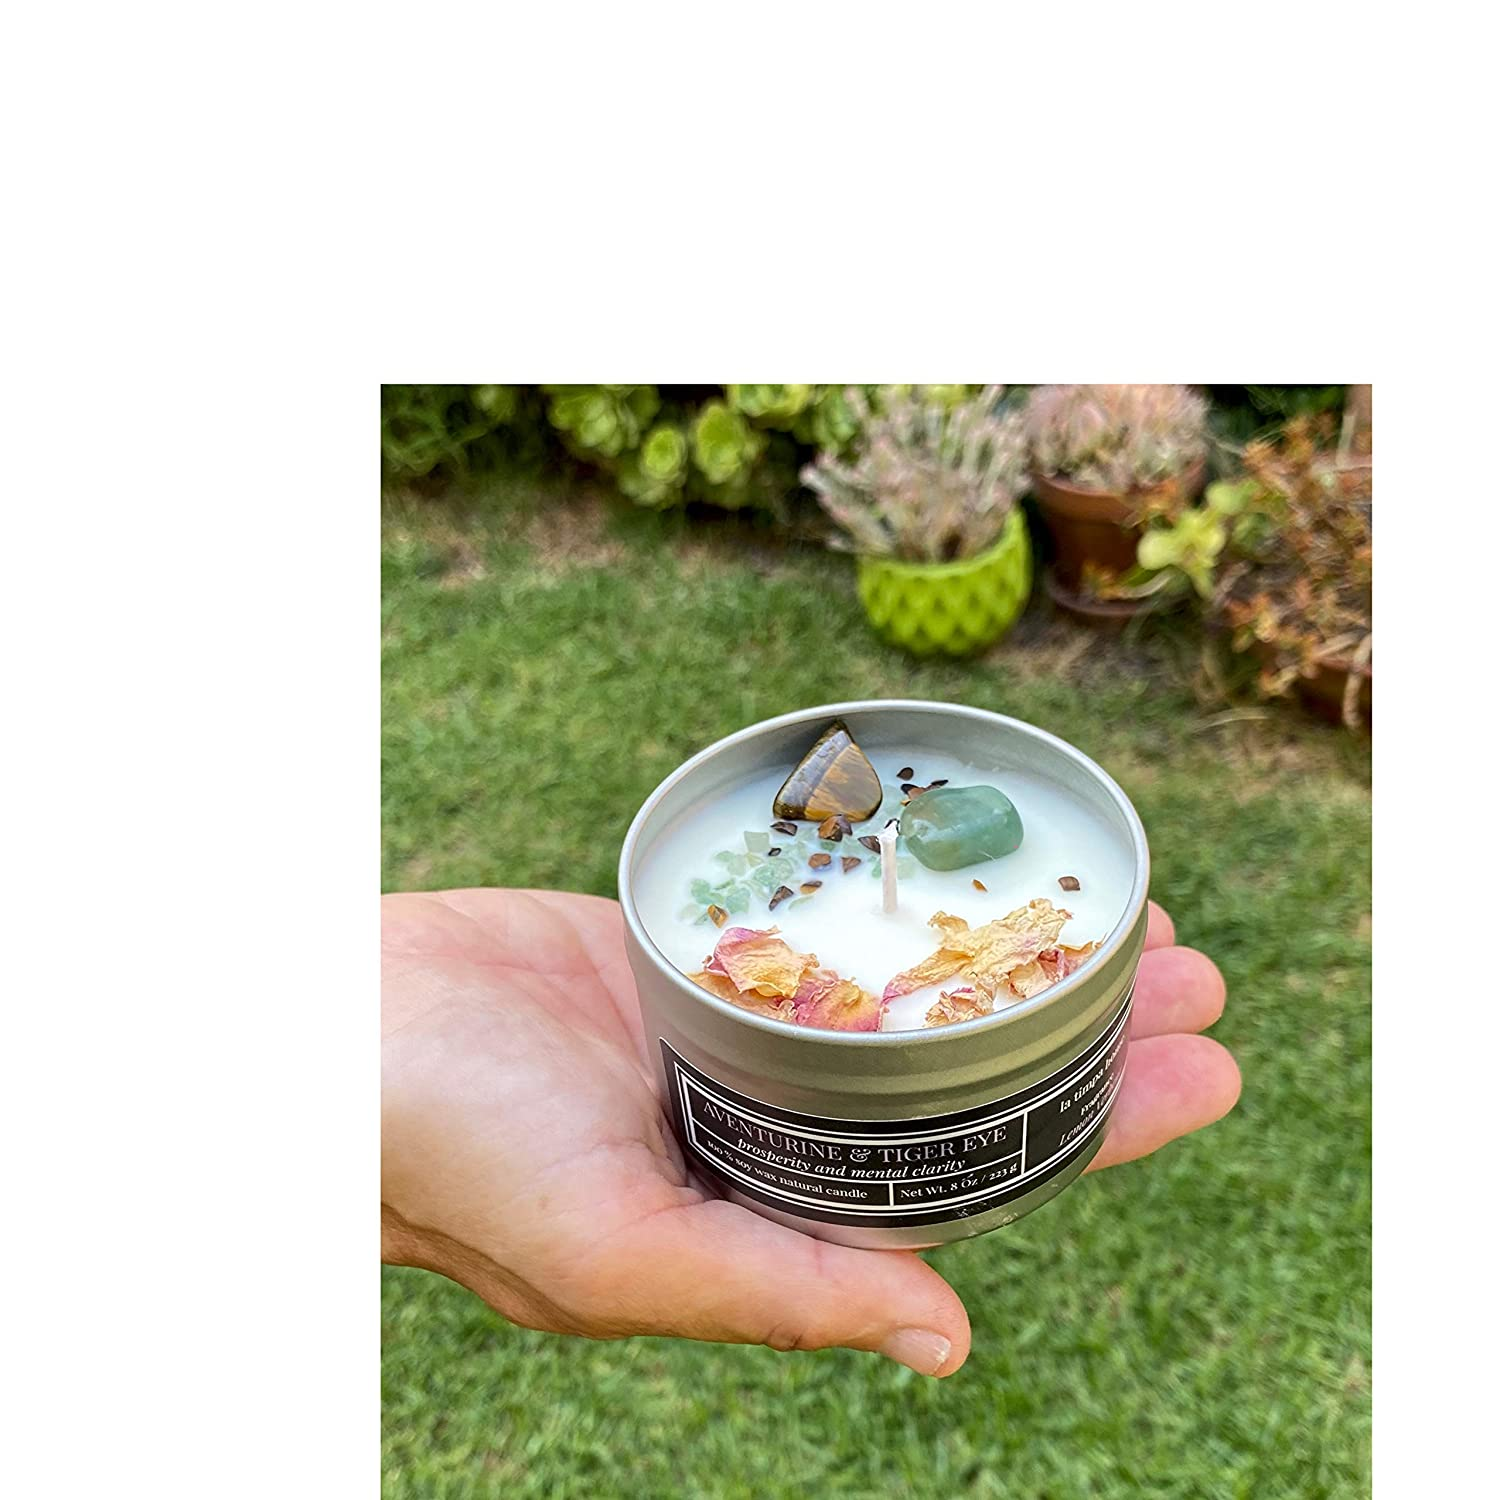 Soy Candles for Prosperity Gemstones Explore now! Ritual and Meditation Intention Candle Prosperity and Mental Clarity